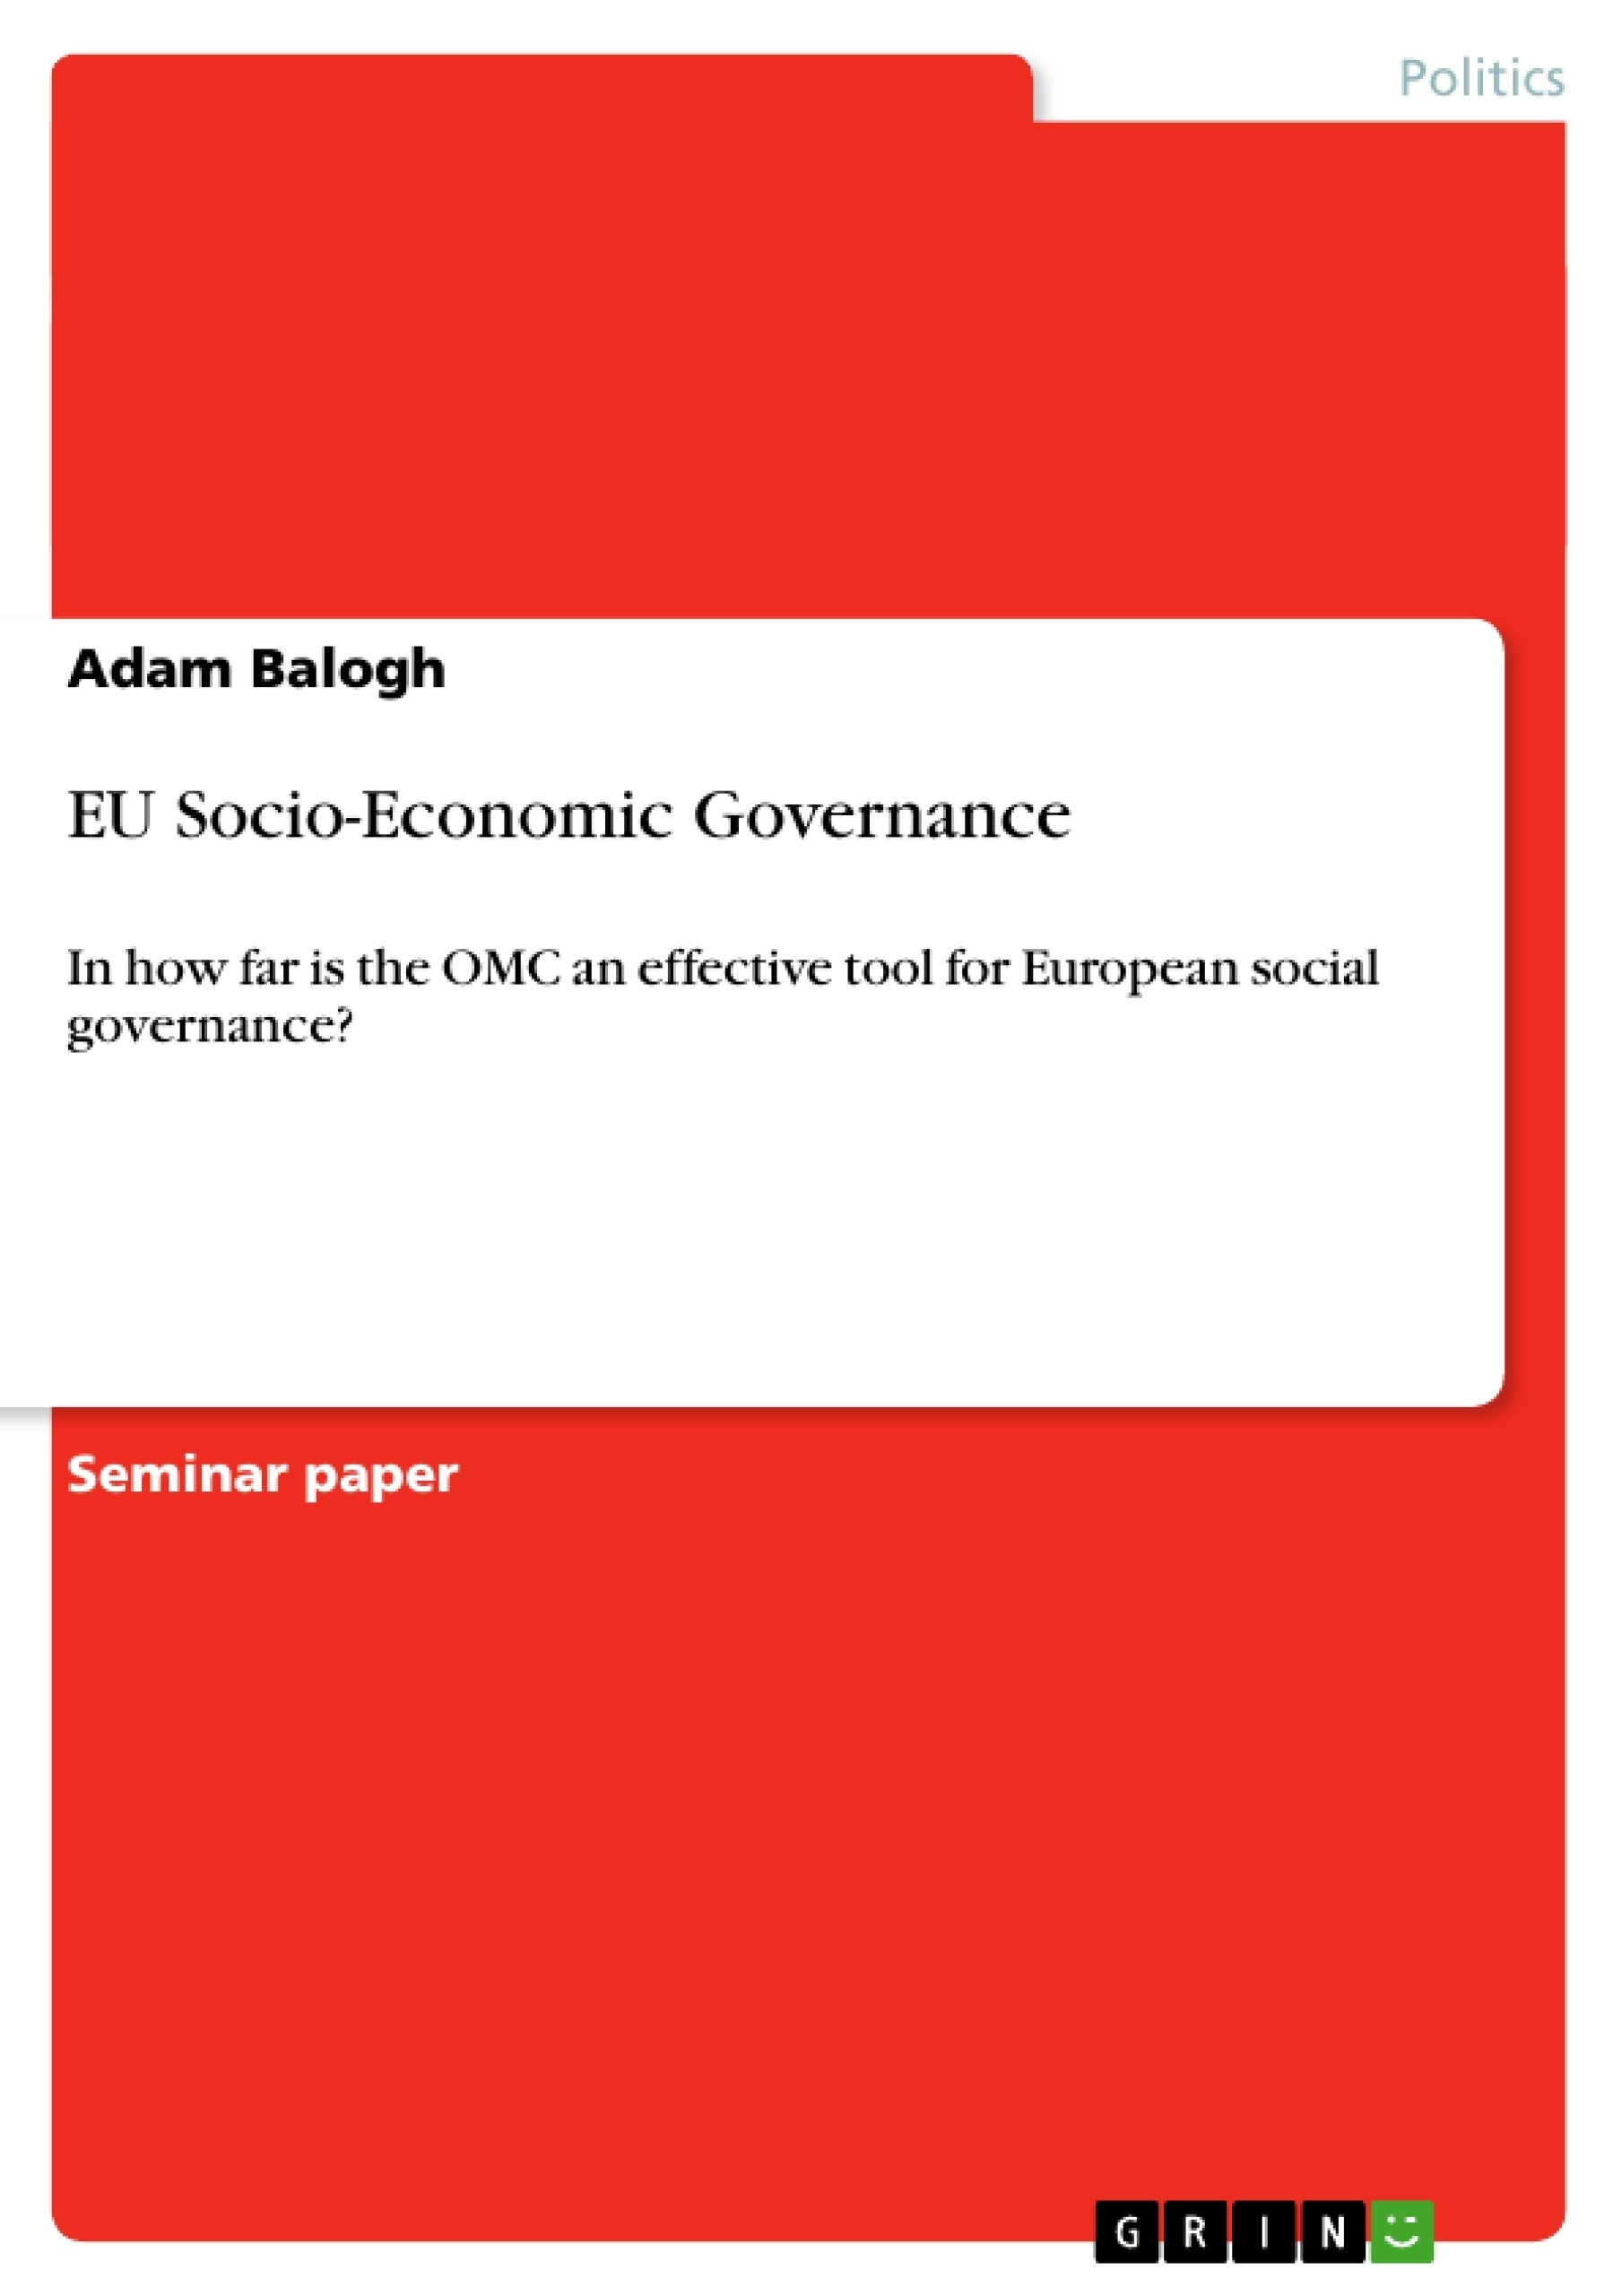 Title: EU Socio-Economic Governance